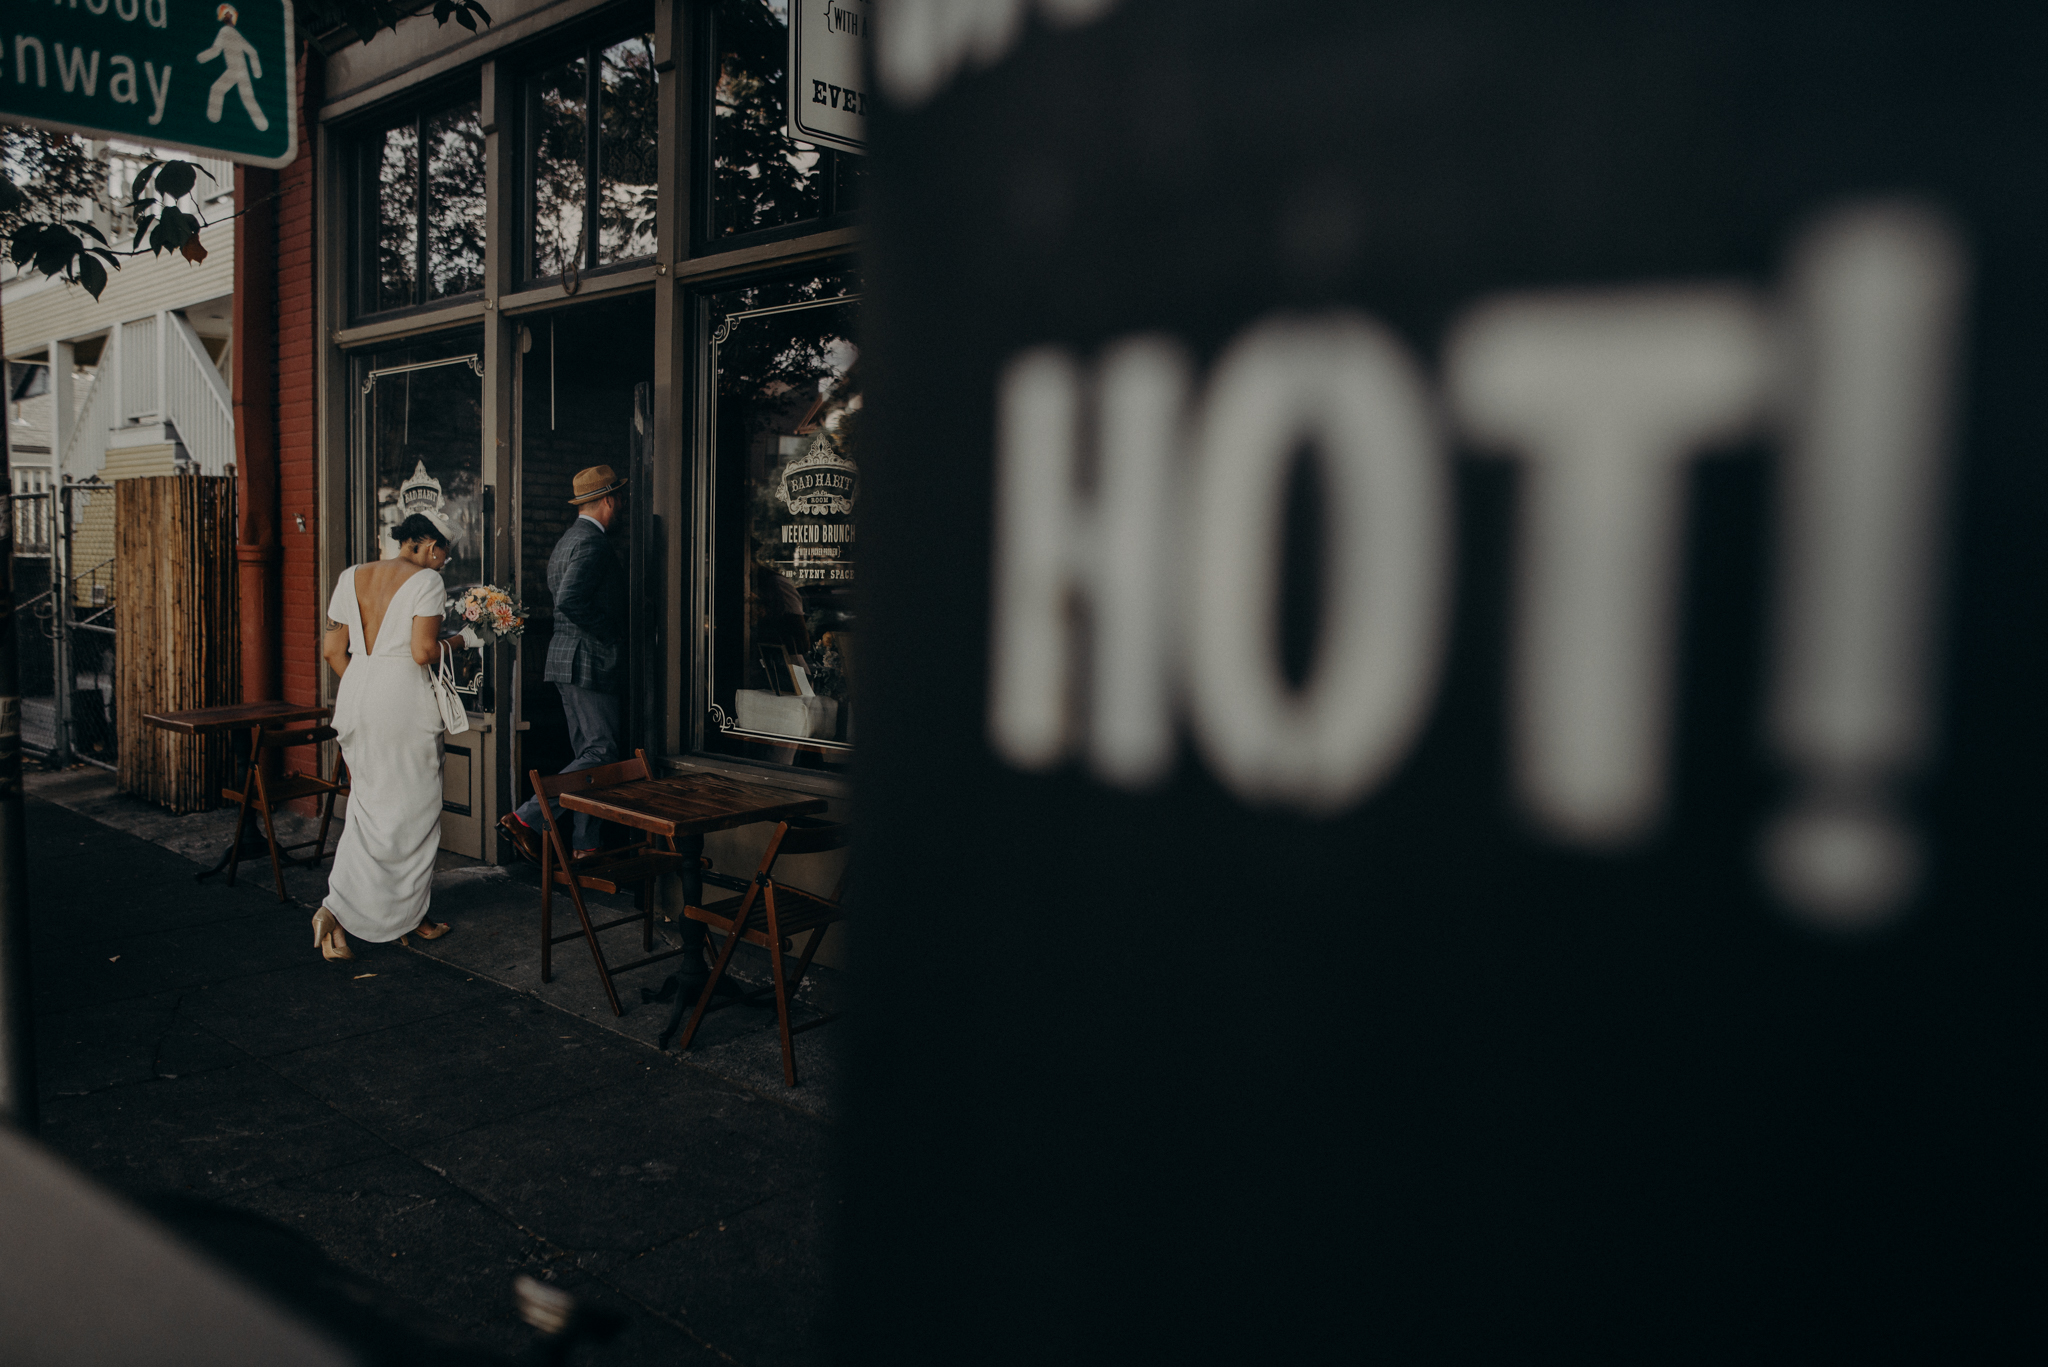 Los Angeles Wedding Photographer - Portland Elopement Photographer - IsaiahAndTaylor.com-092.jpg